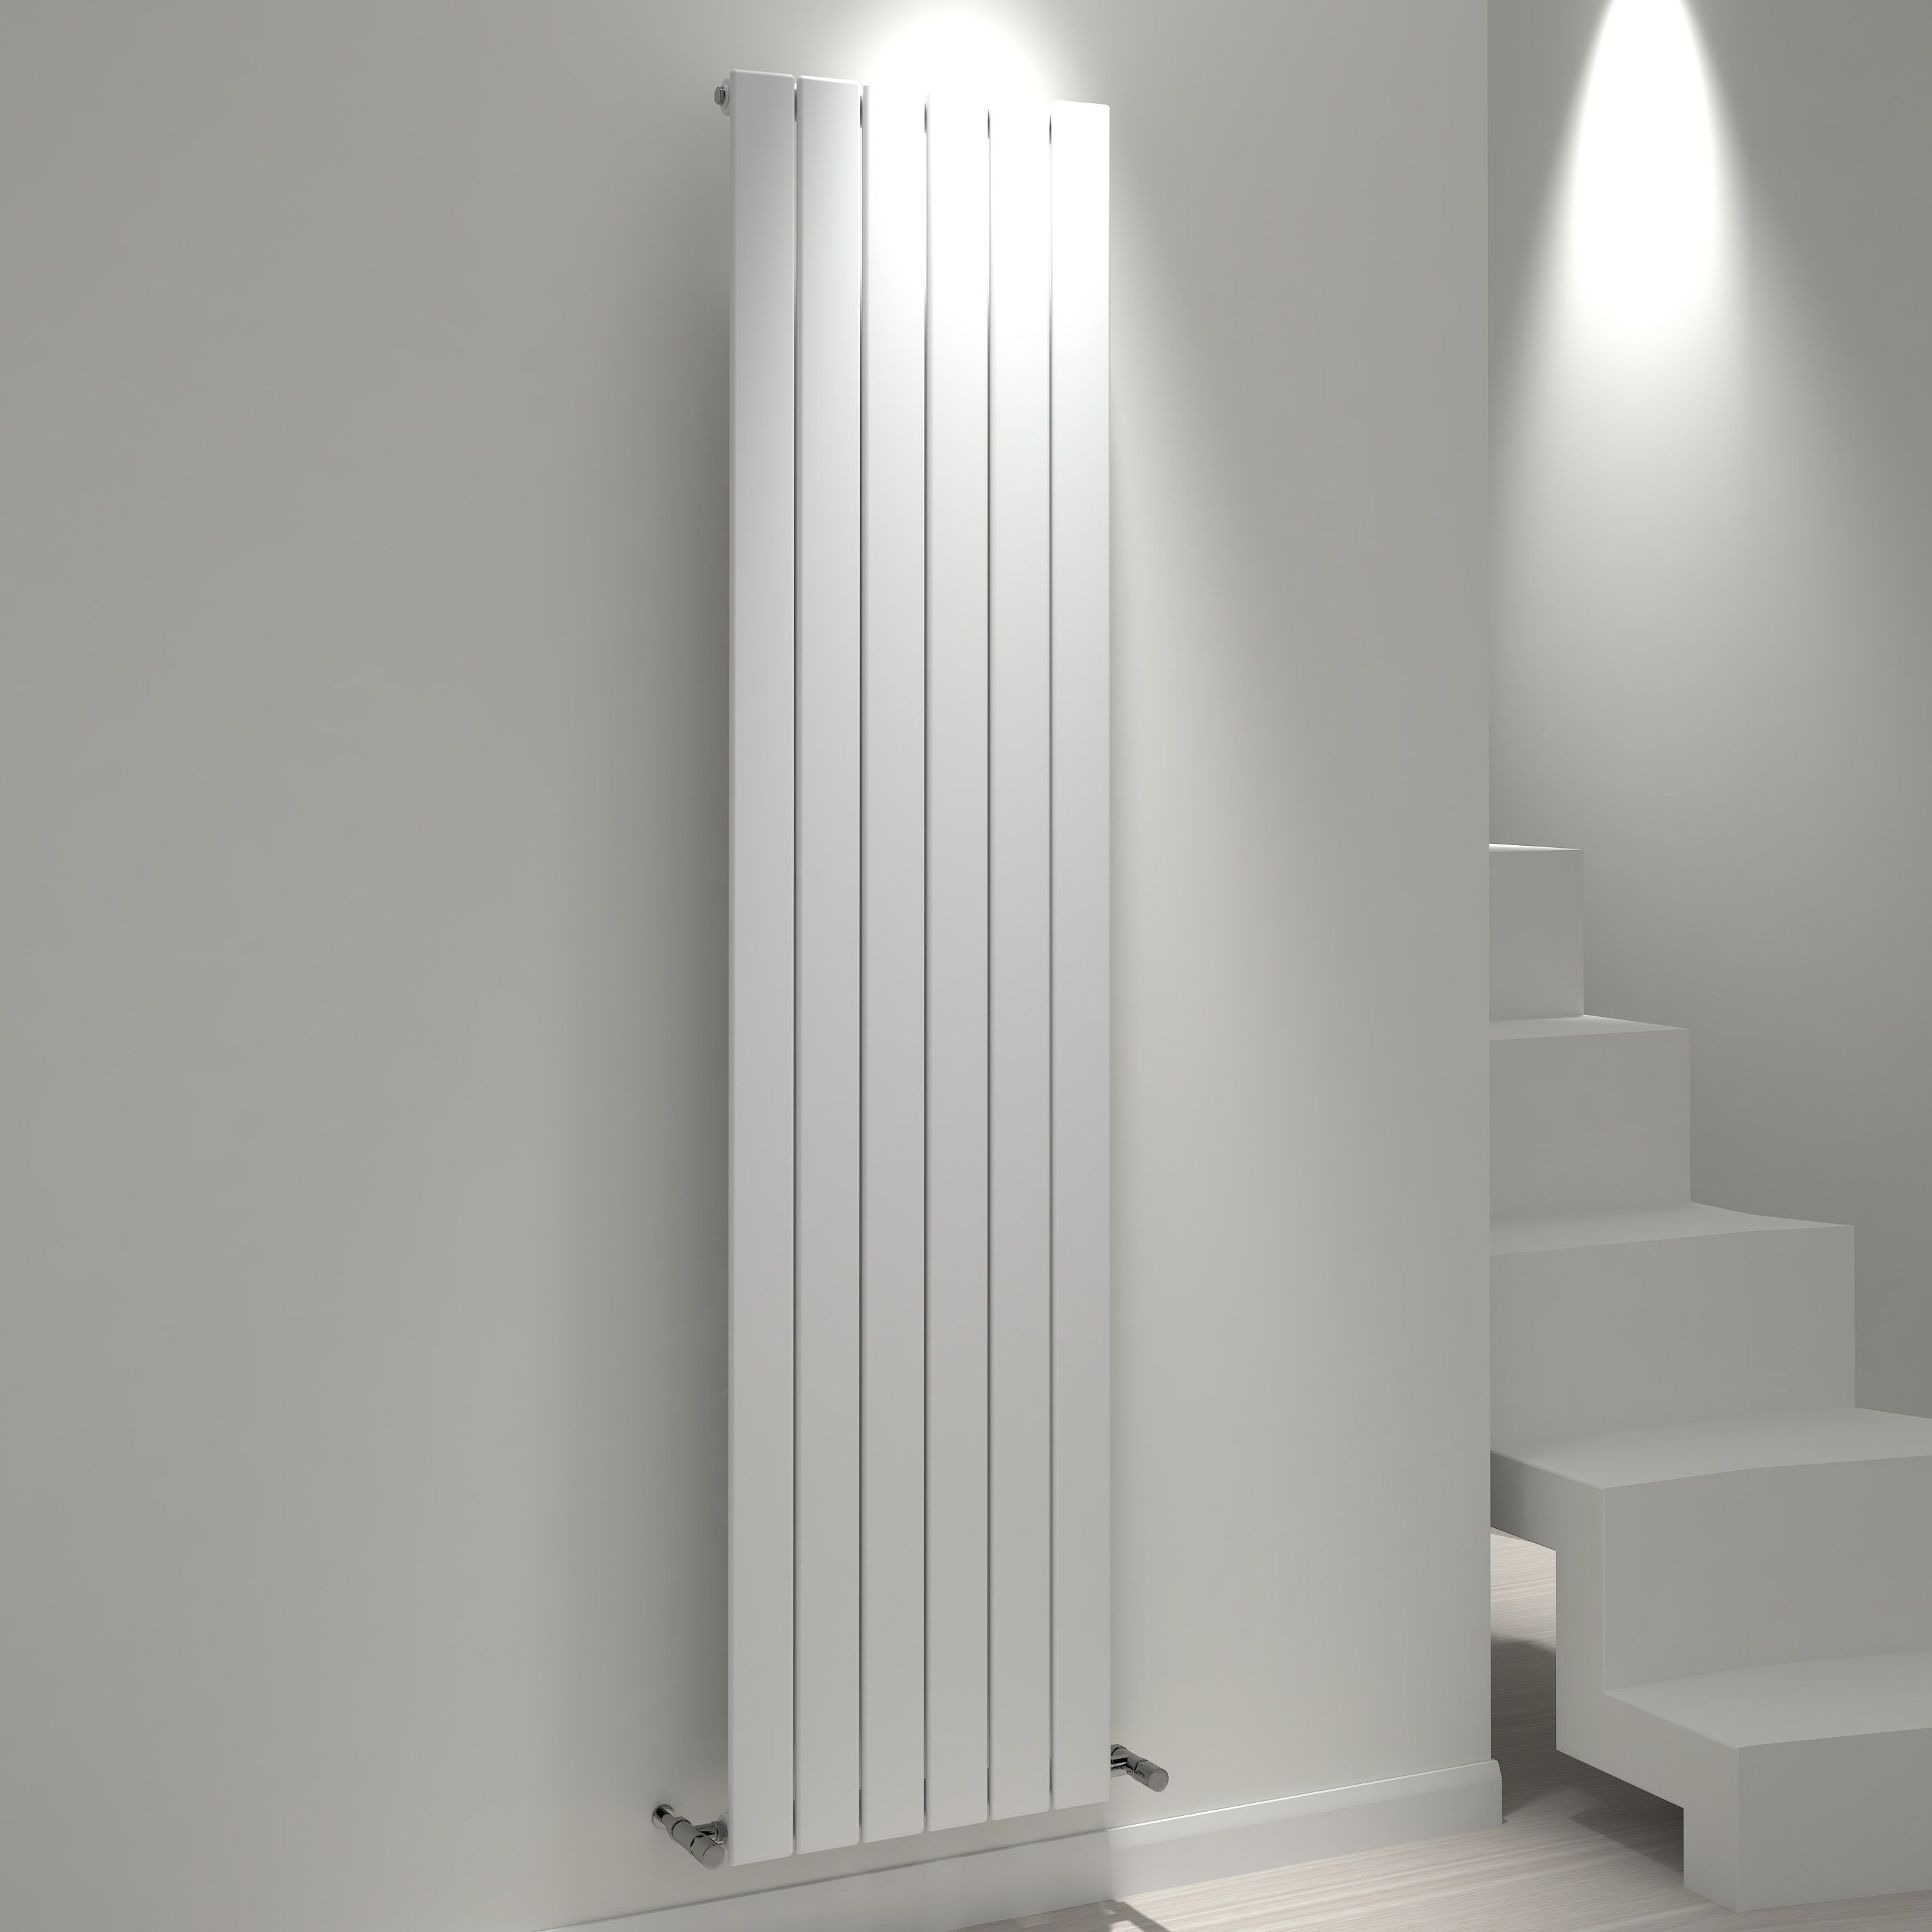 Kudox Tira Vertical Radiator White (h)1800 Mm (w)440 Mm